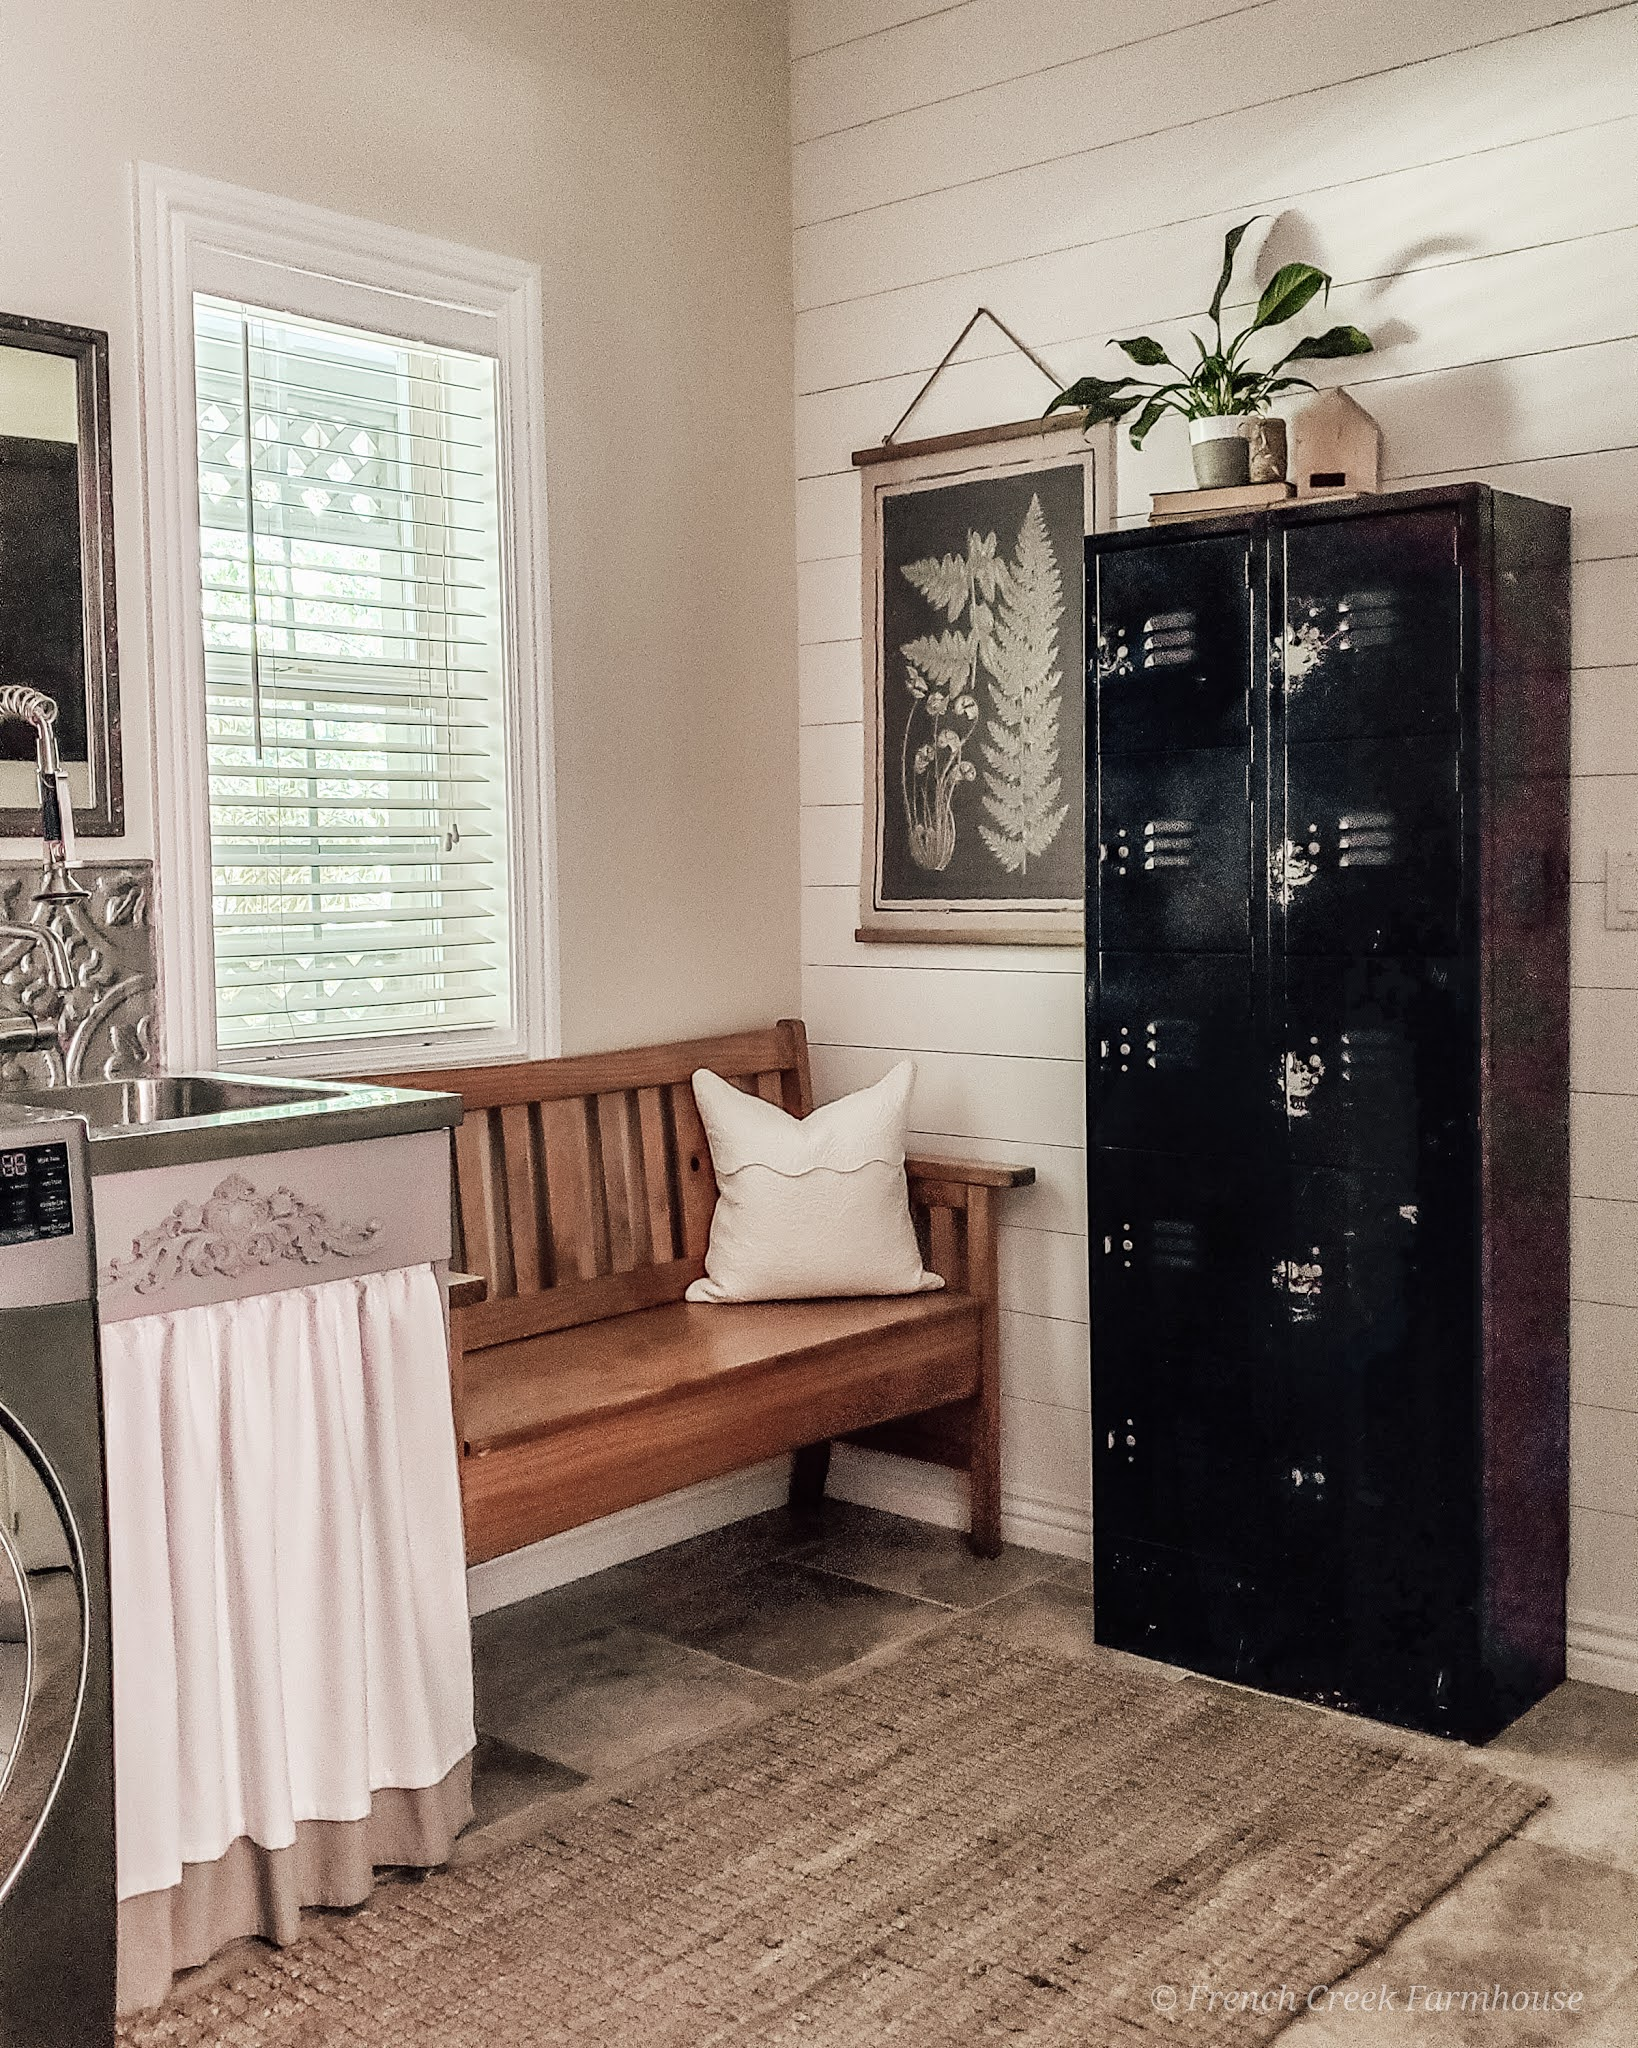 The transformation of our farmhouse laundry room is amazing and only took 8 weeks